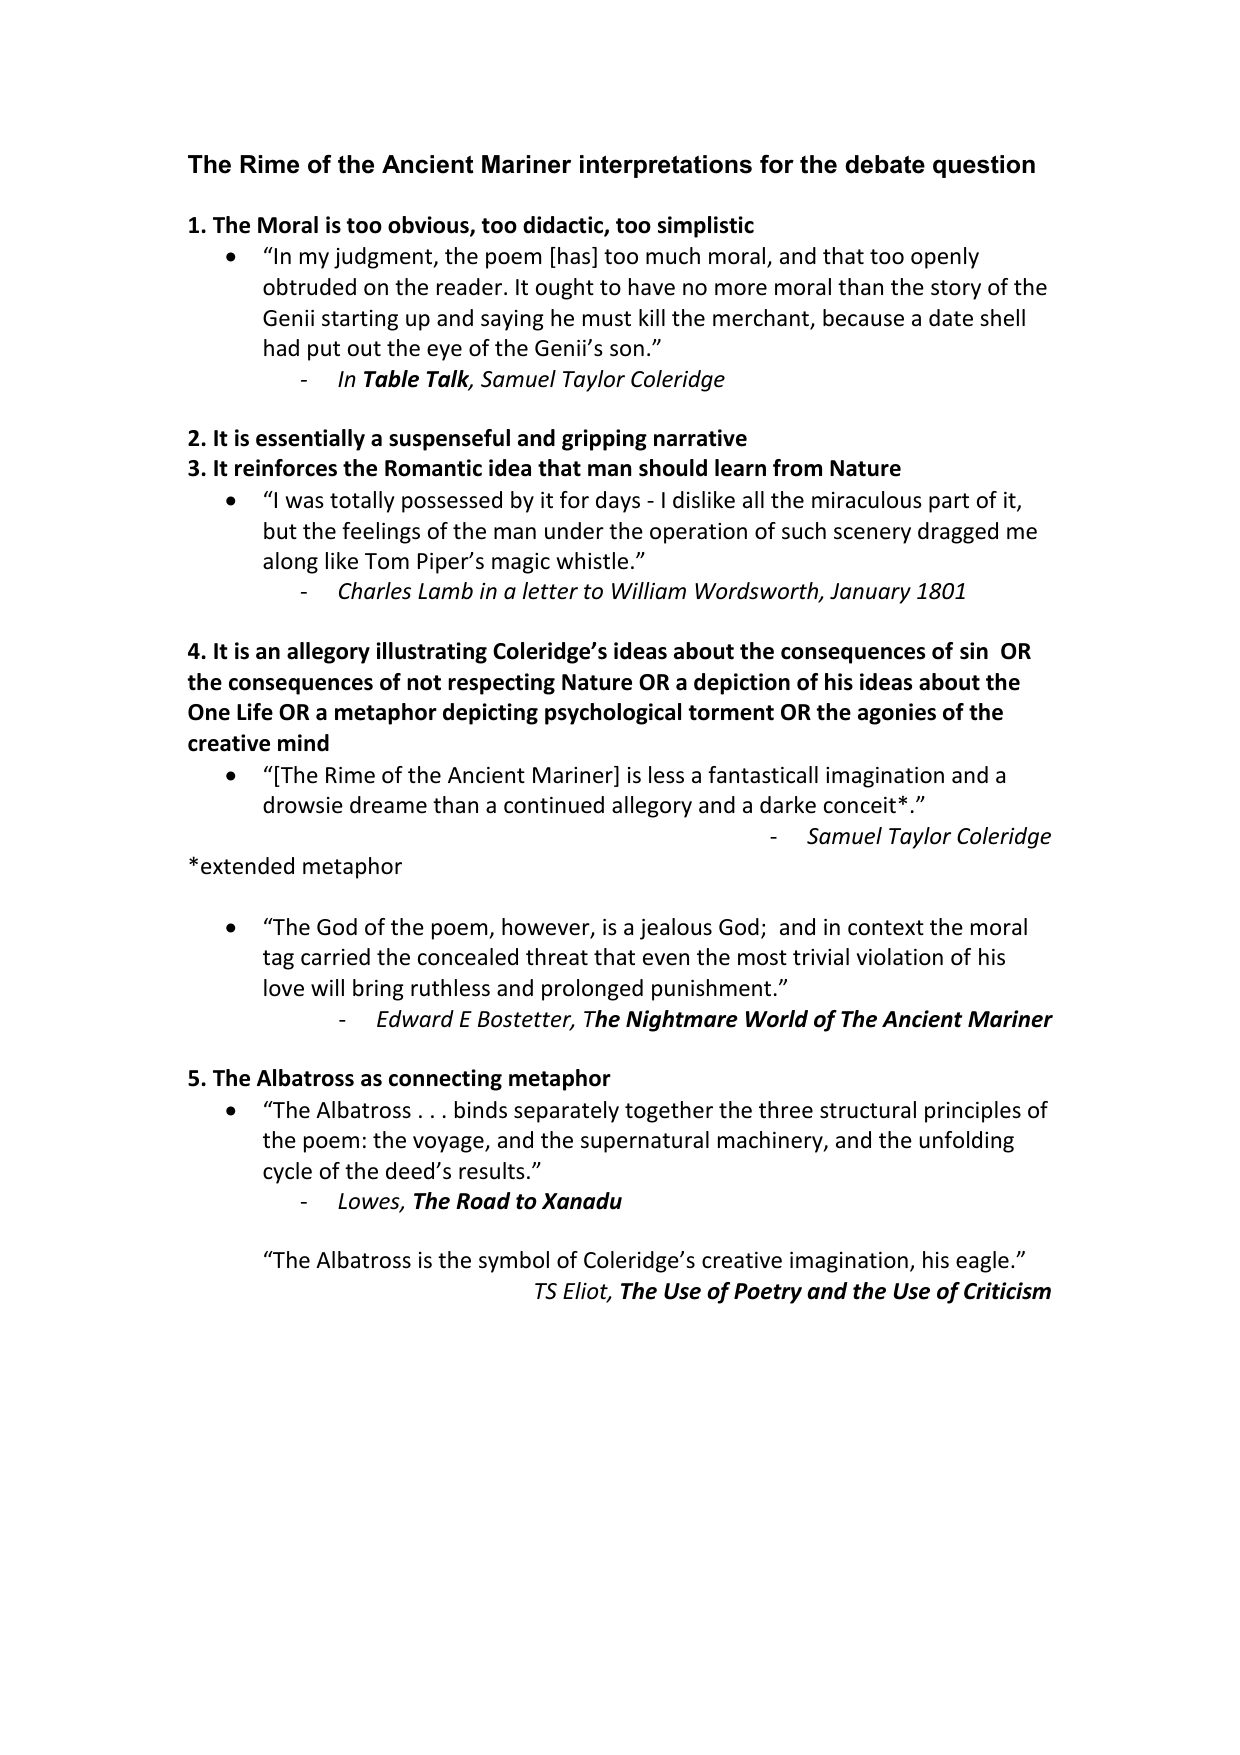 What Is A Thesis Statement In An Essay Examples  Personal Essay Samples For High School also Short English Essays For Students The Rime Of The Ancient Mariner Interpretations For The Debate Proposal Essay Template